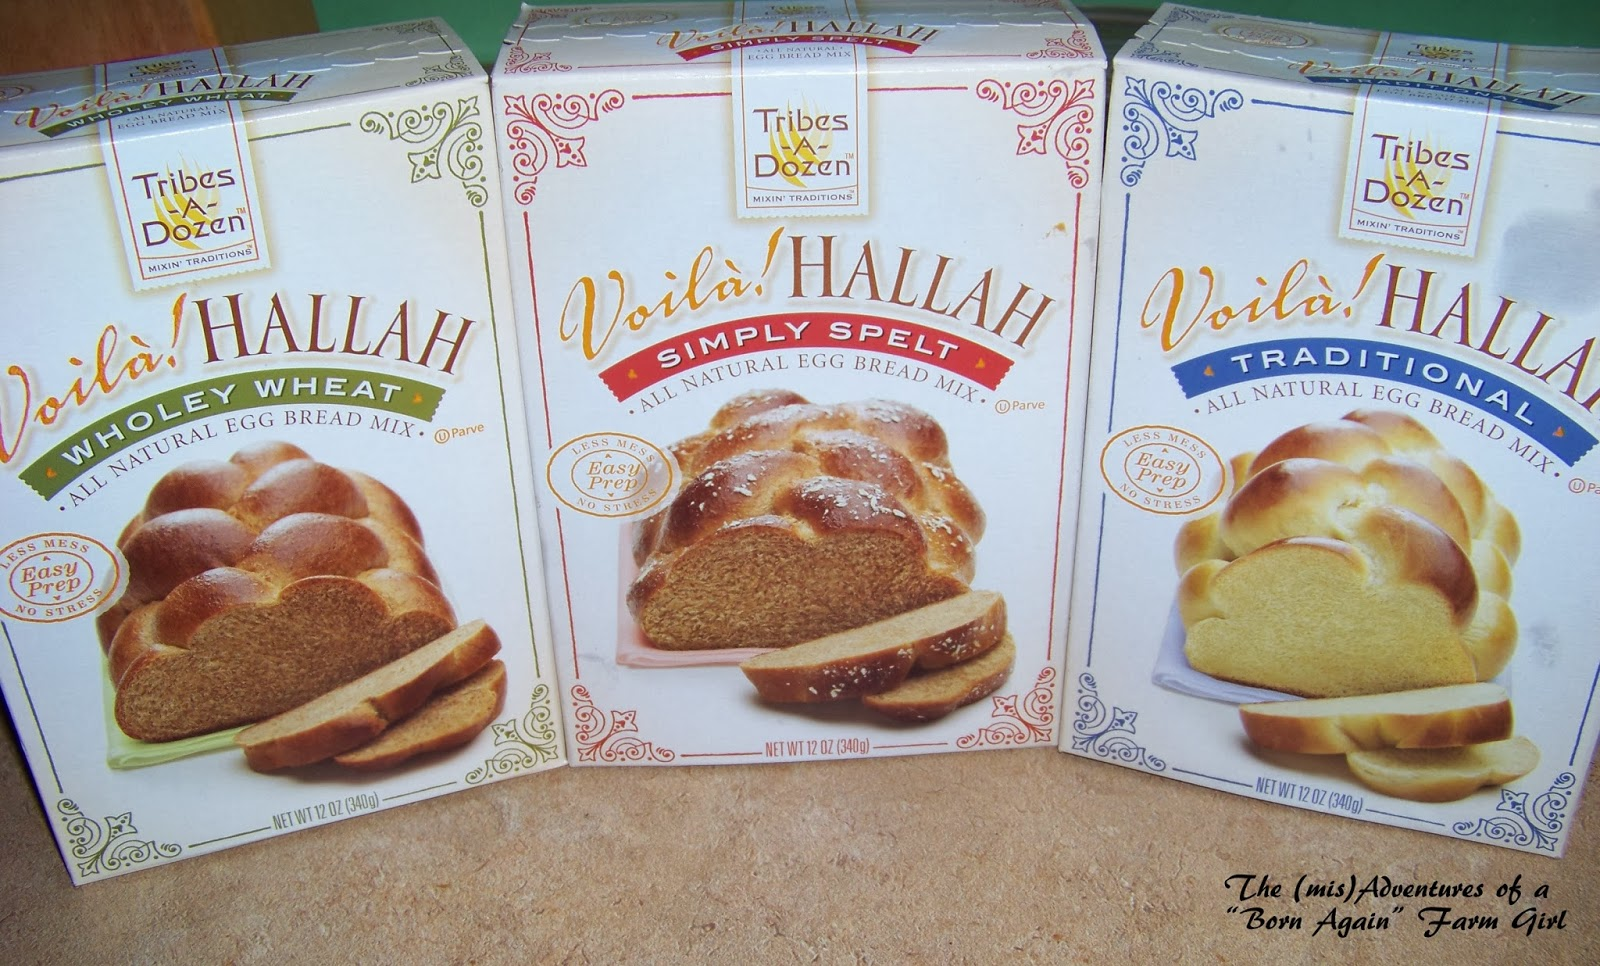 Tribes-A-Dozen Voila! HALLAH Bread Mixes (Review)